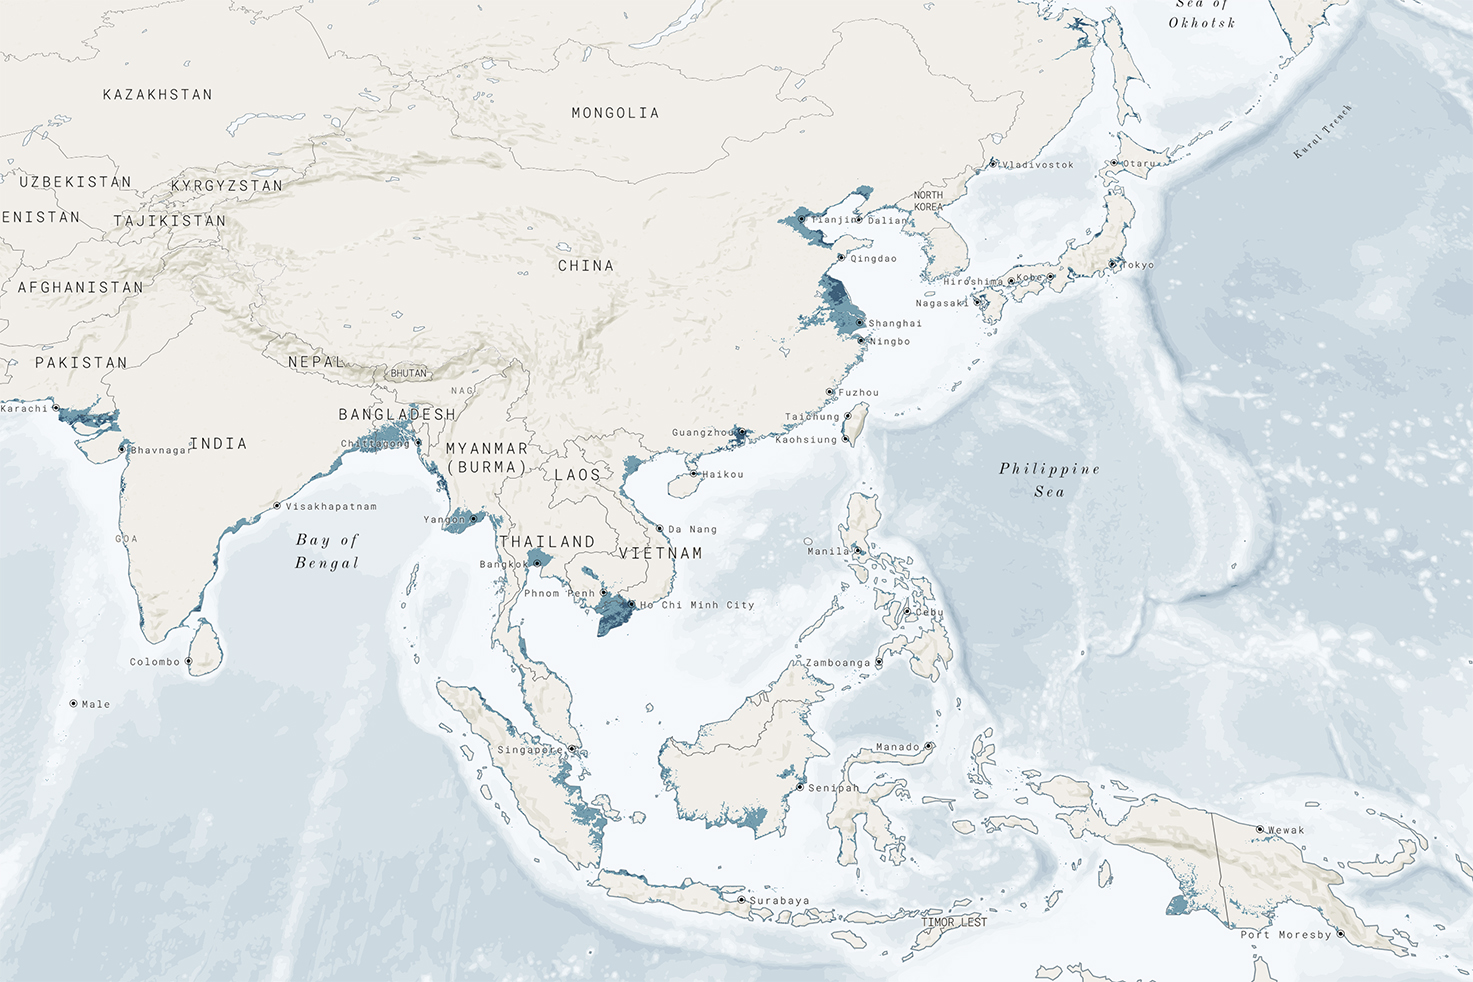 Going Under: How sea level rise is threatening to sink major Asian cities